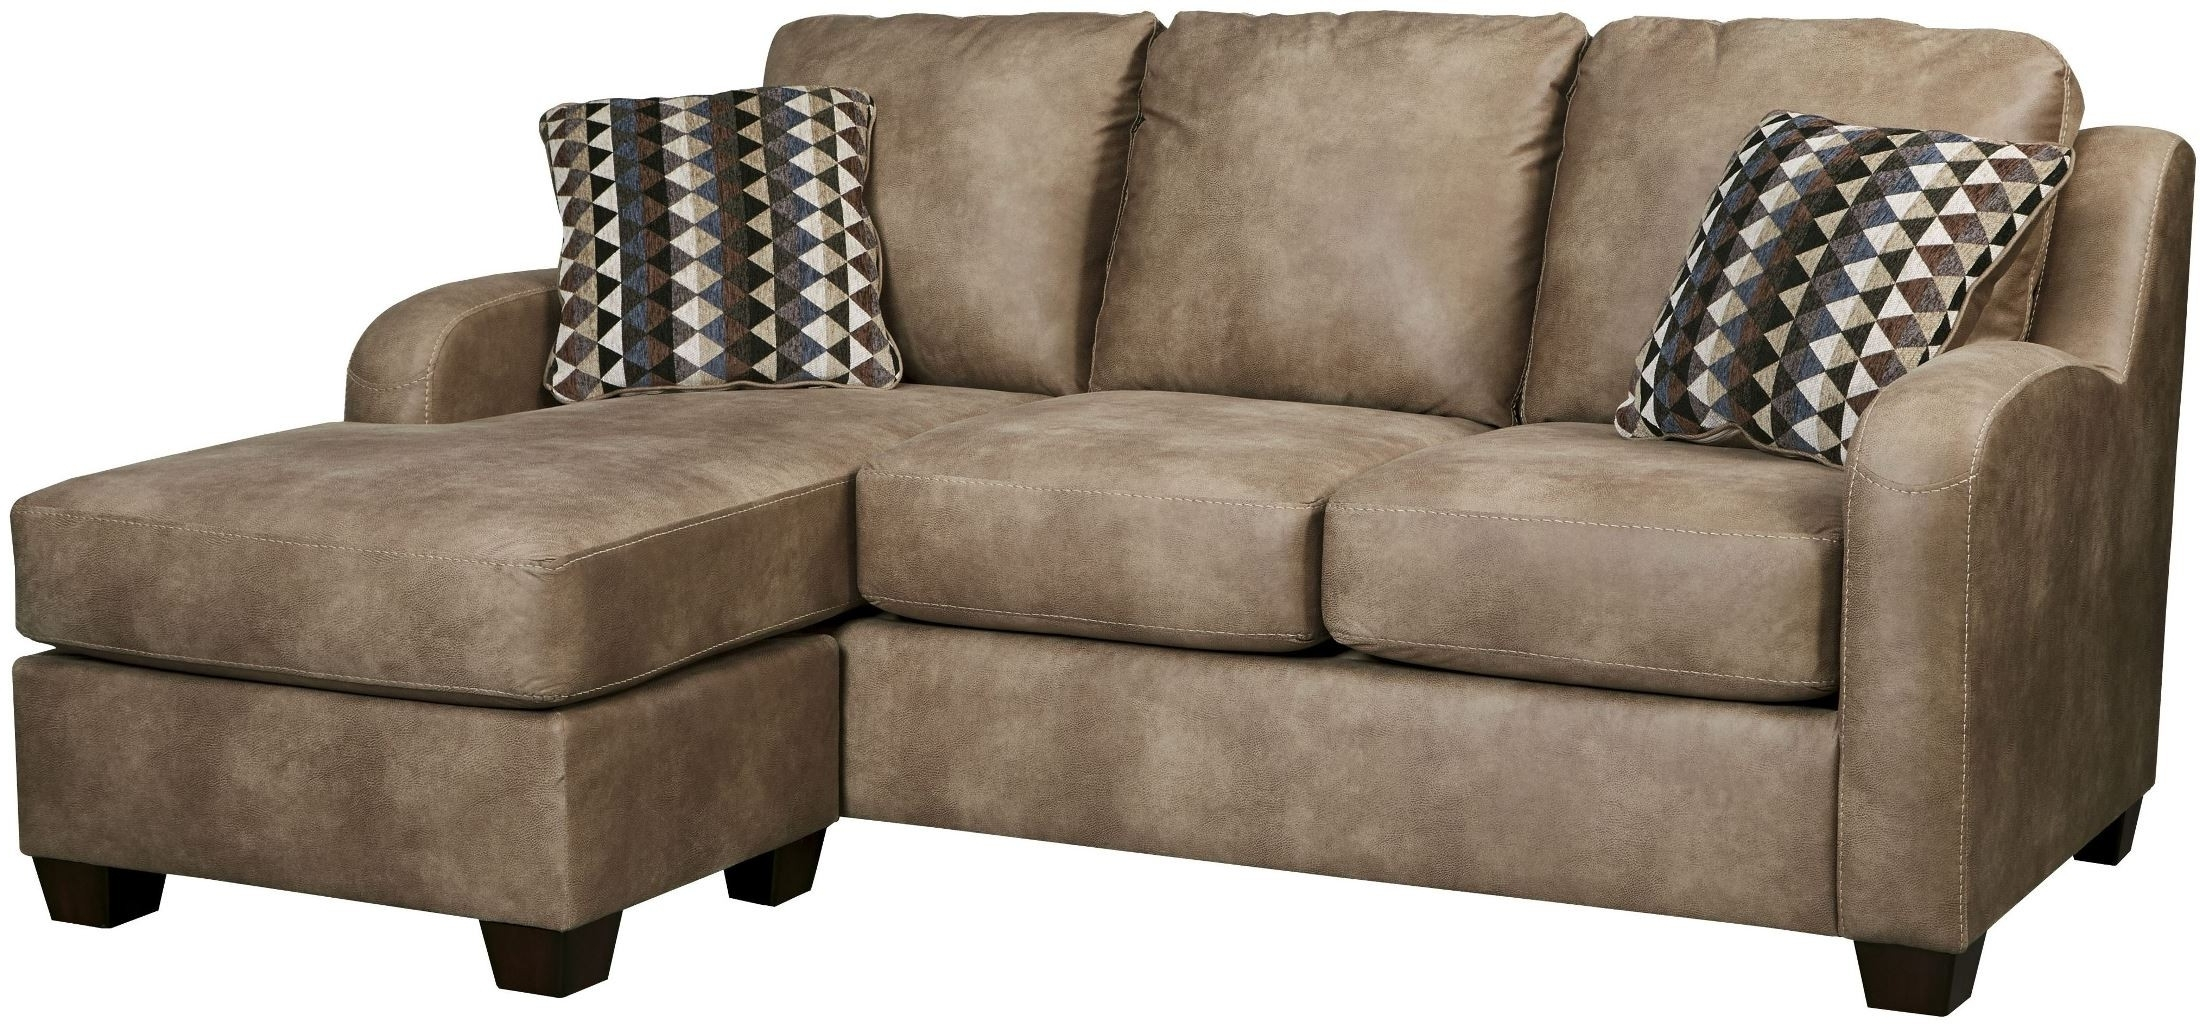 Ashley Sofa Chaises With Current Alturo Dune Sofa Chaise From Ashley (6000318) (View 3 of 15)